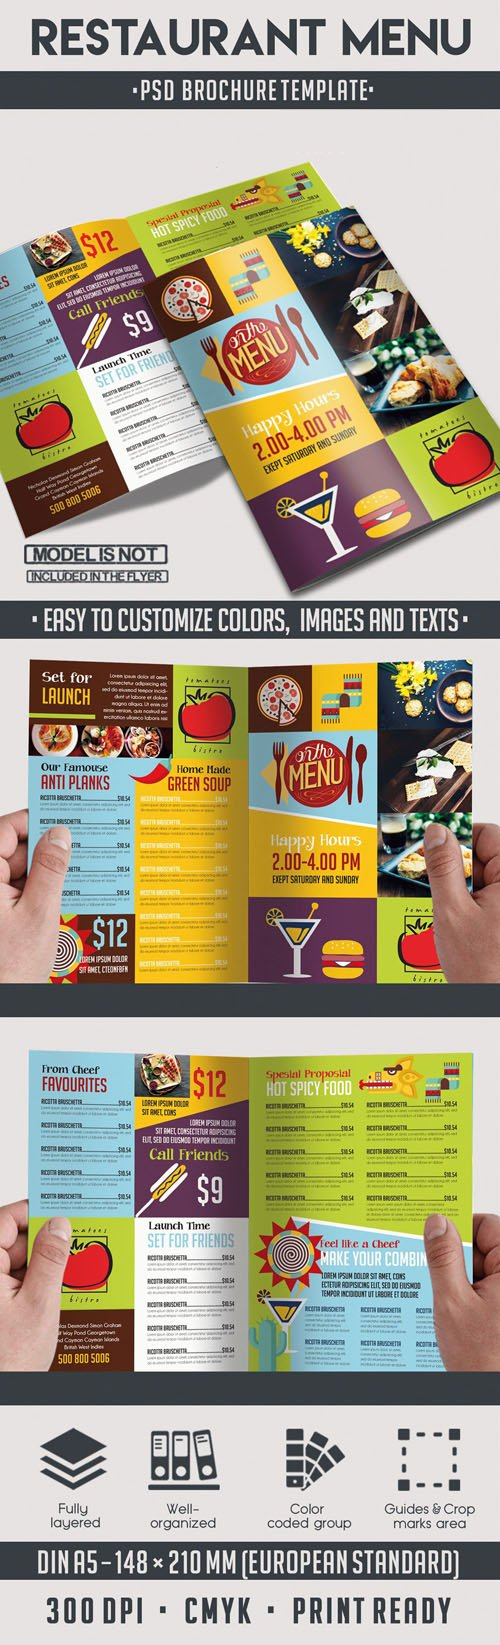 Restaurant Menu Bi-Fold PSD Brochure Template